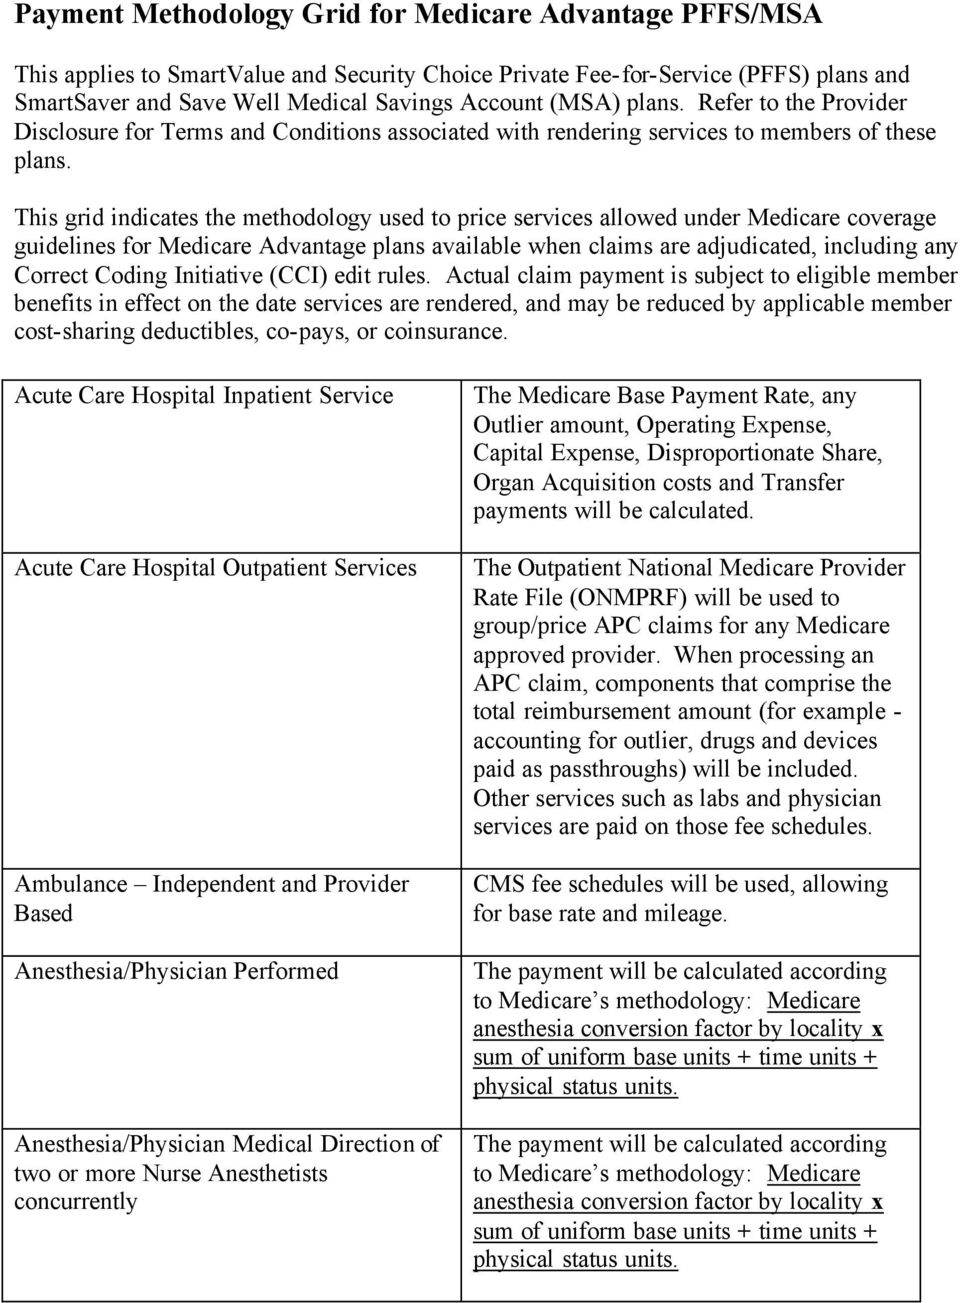 This grid indicates the methodology used to price services allowed under Medicare coverage guidelines for Medicare Advantage plans available when claims are adjudicated, including any Correct Coding